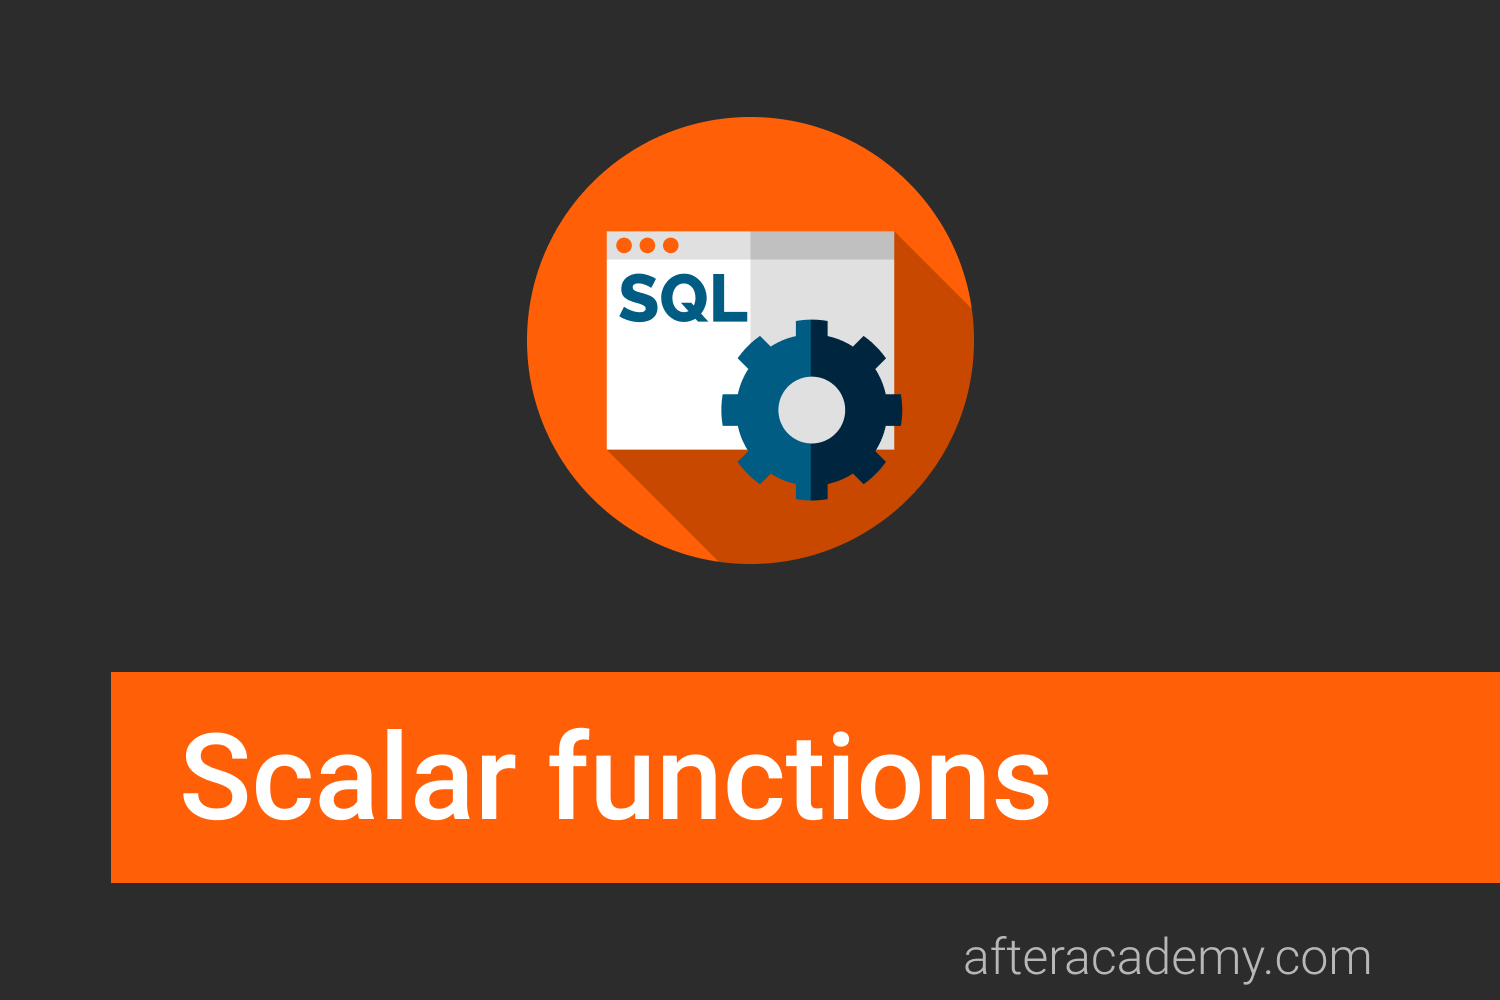 What are Scalar functions?